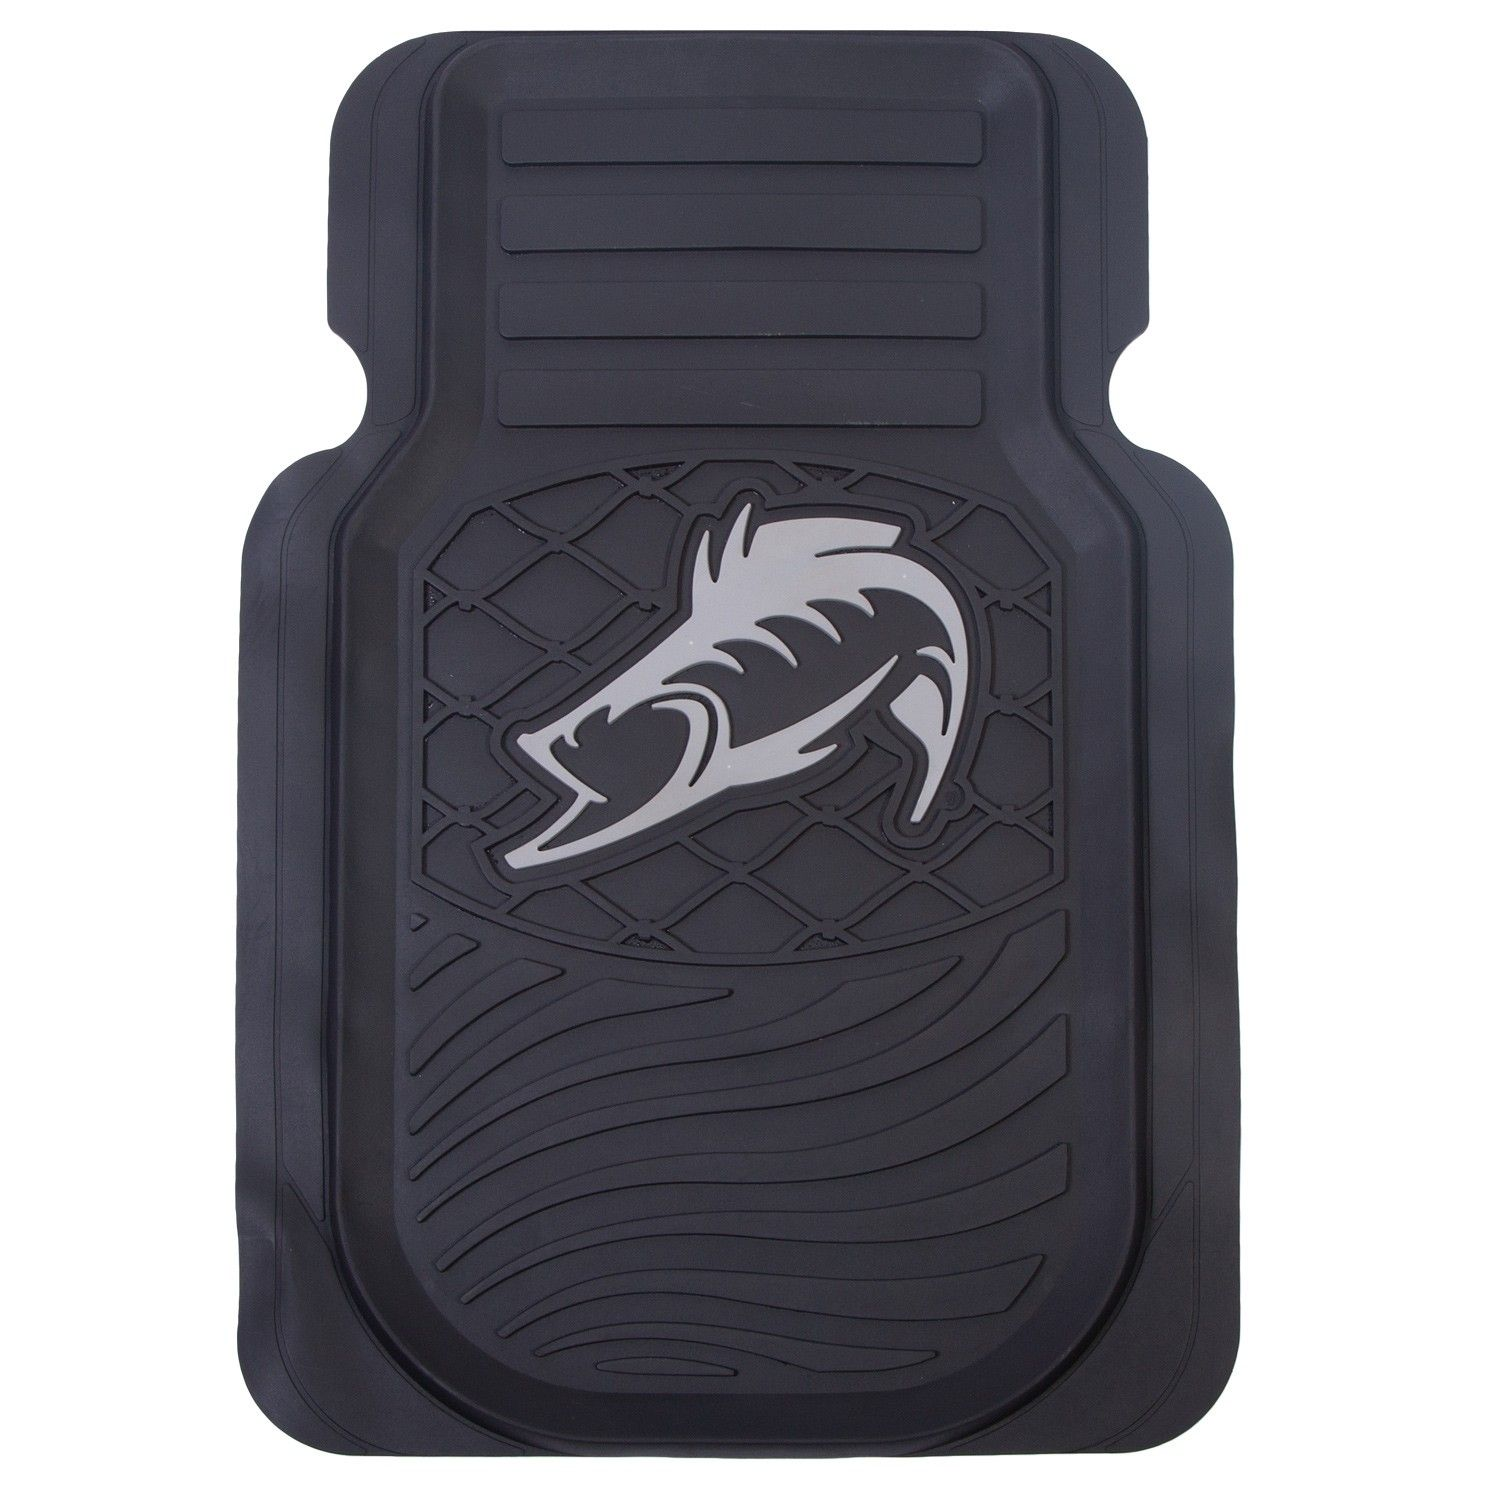 Striker Fish Emblem Floor Mats His Camo Christmas Guide